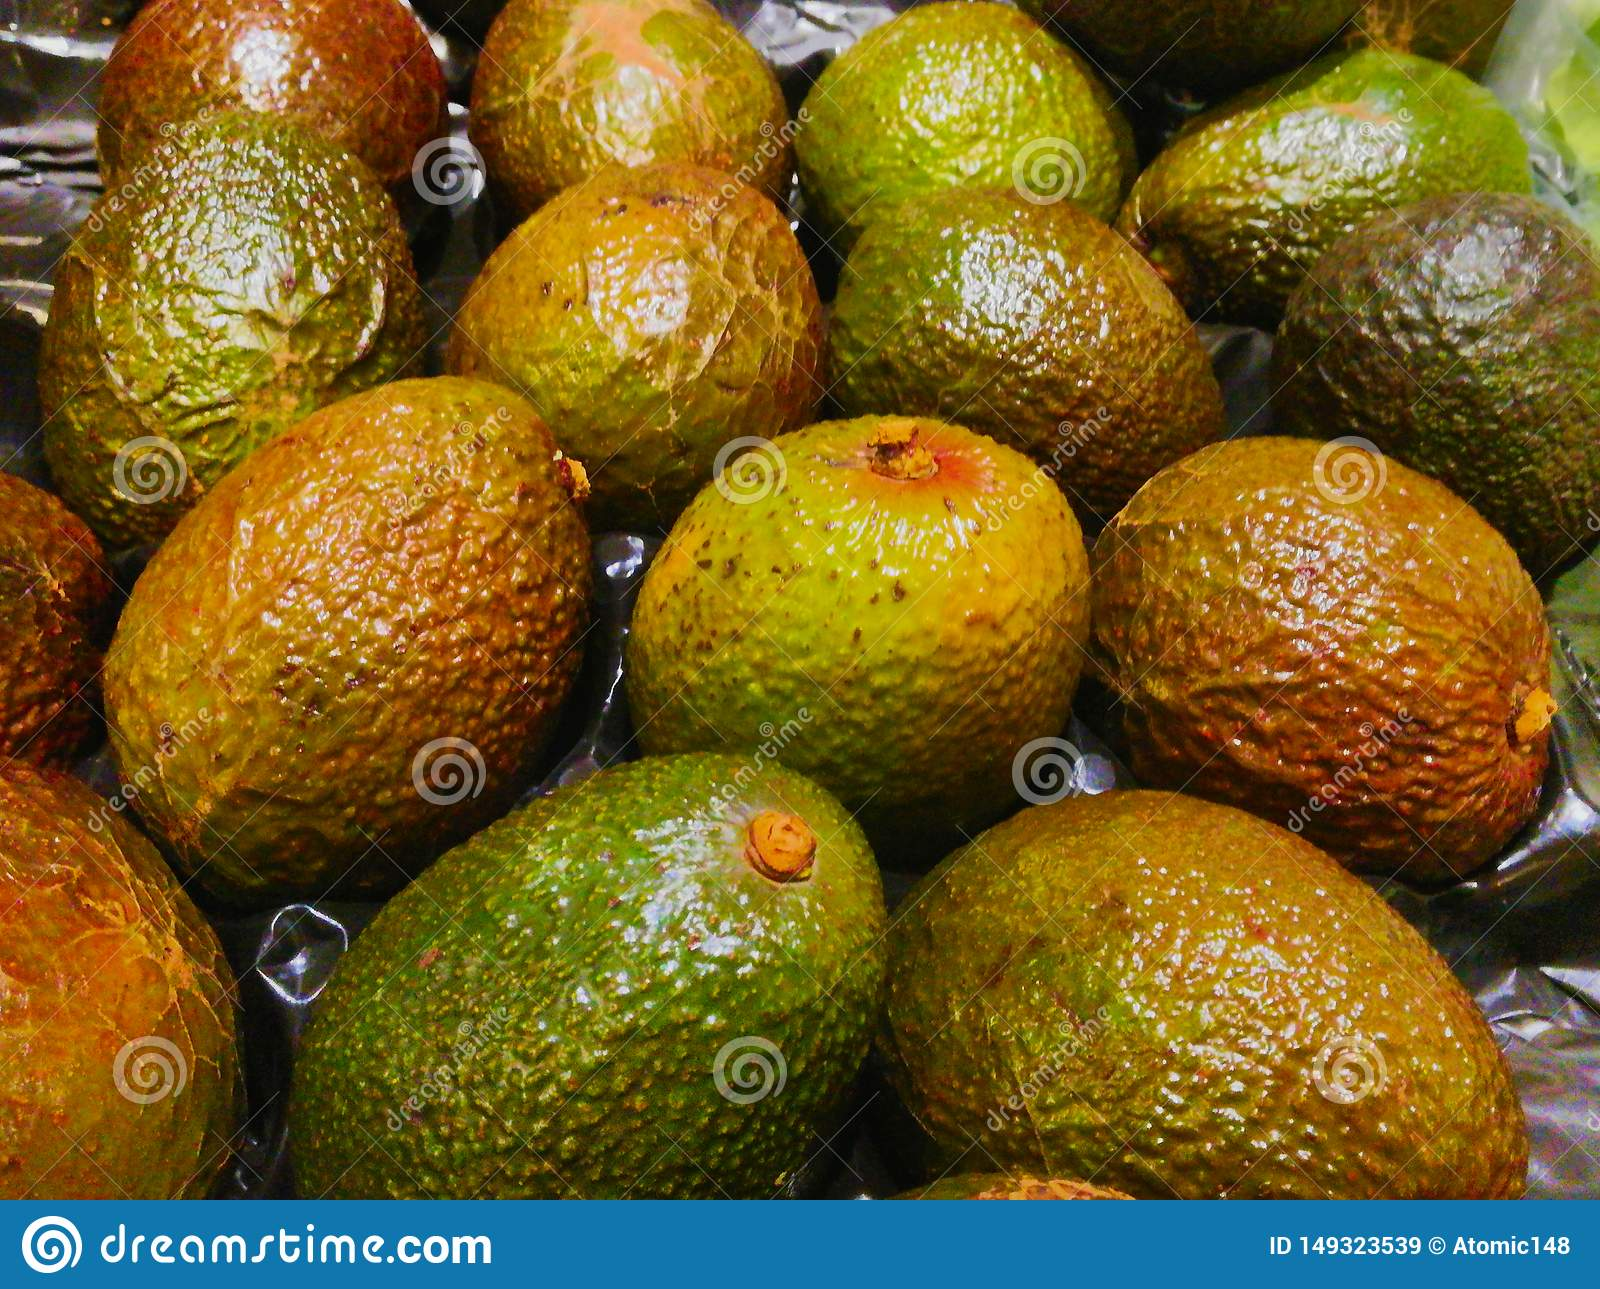 Avocado`s just filled in the supermarket